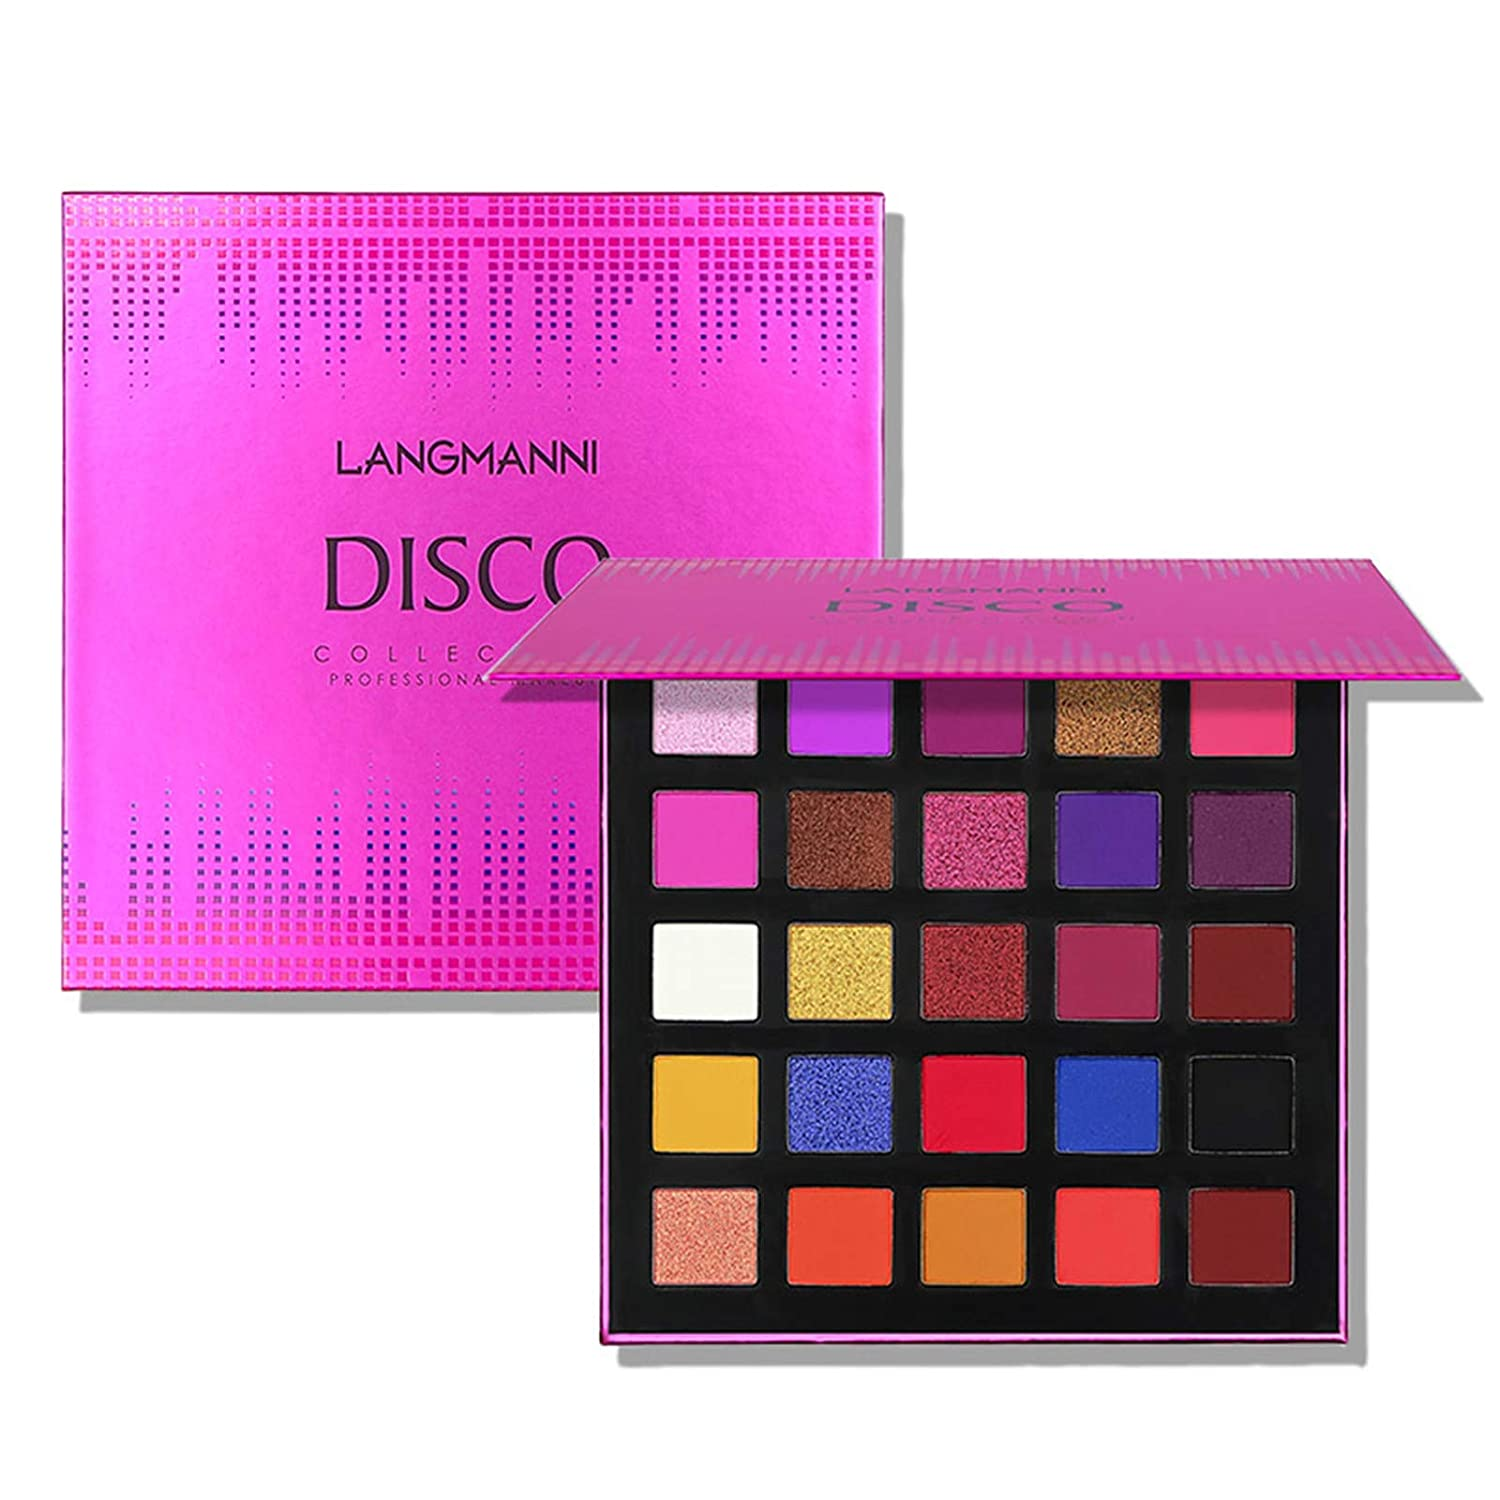 25 Colors Eyeshadow Palette, Shimmer Glitter and Matte Eyeshadow Highly Pigmented Waterproof Long Lasting Eye Shadow Vibrant Colorful Eye Cosmetic Make Palette (DISCO)